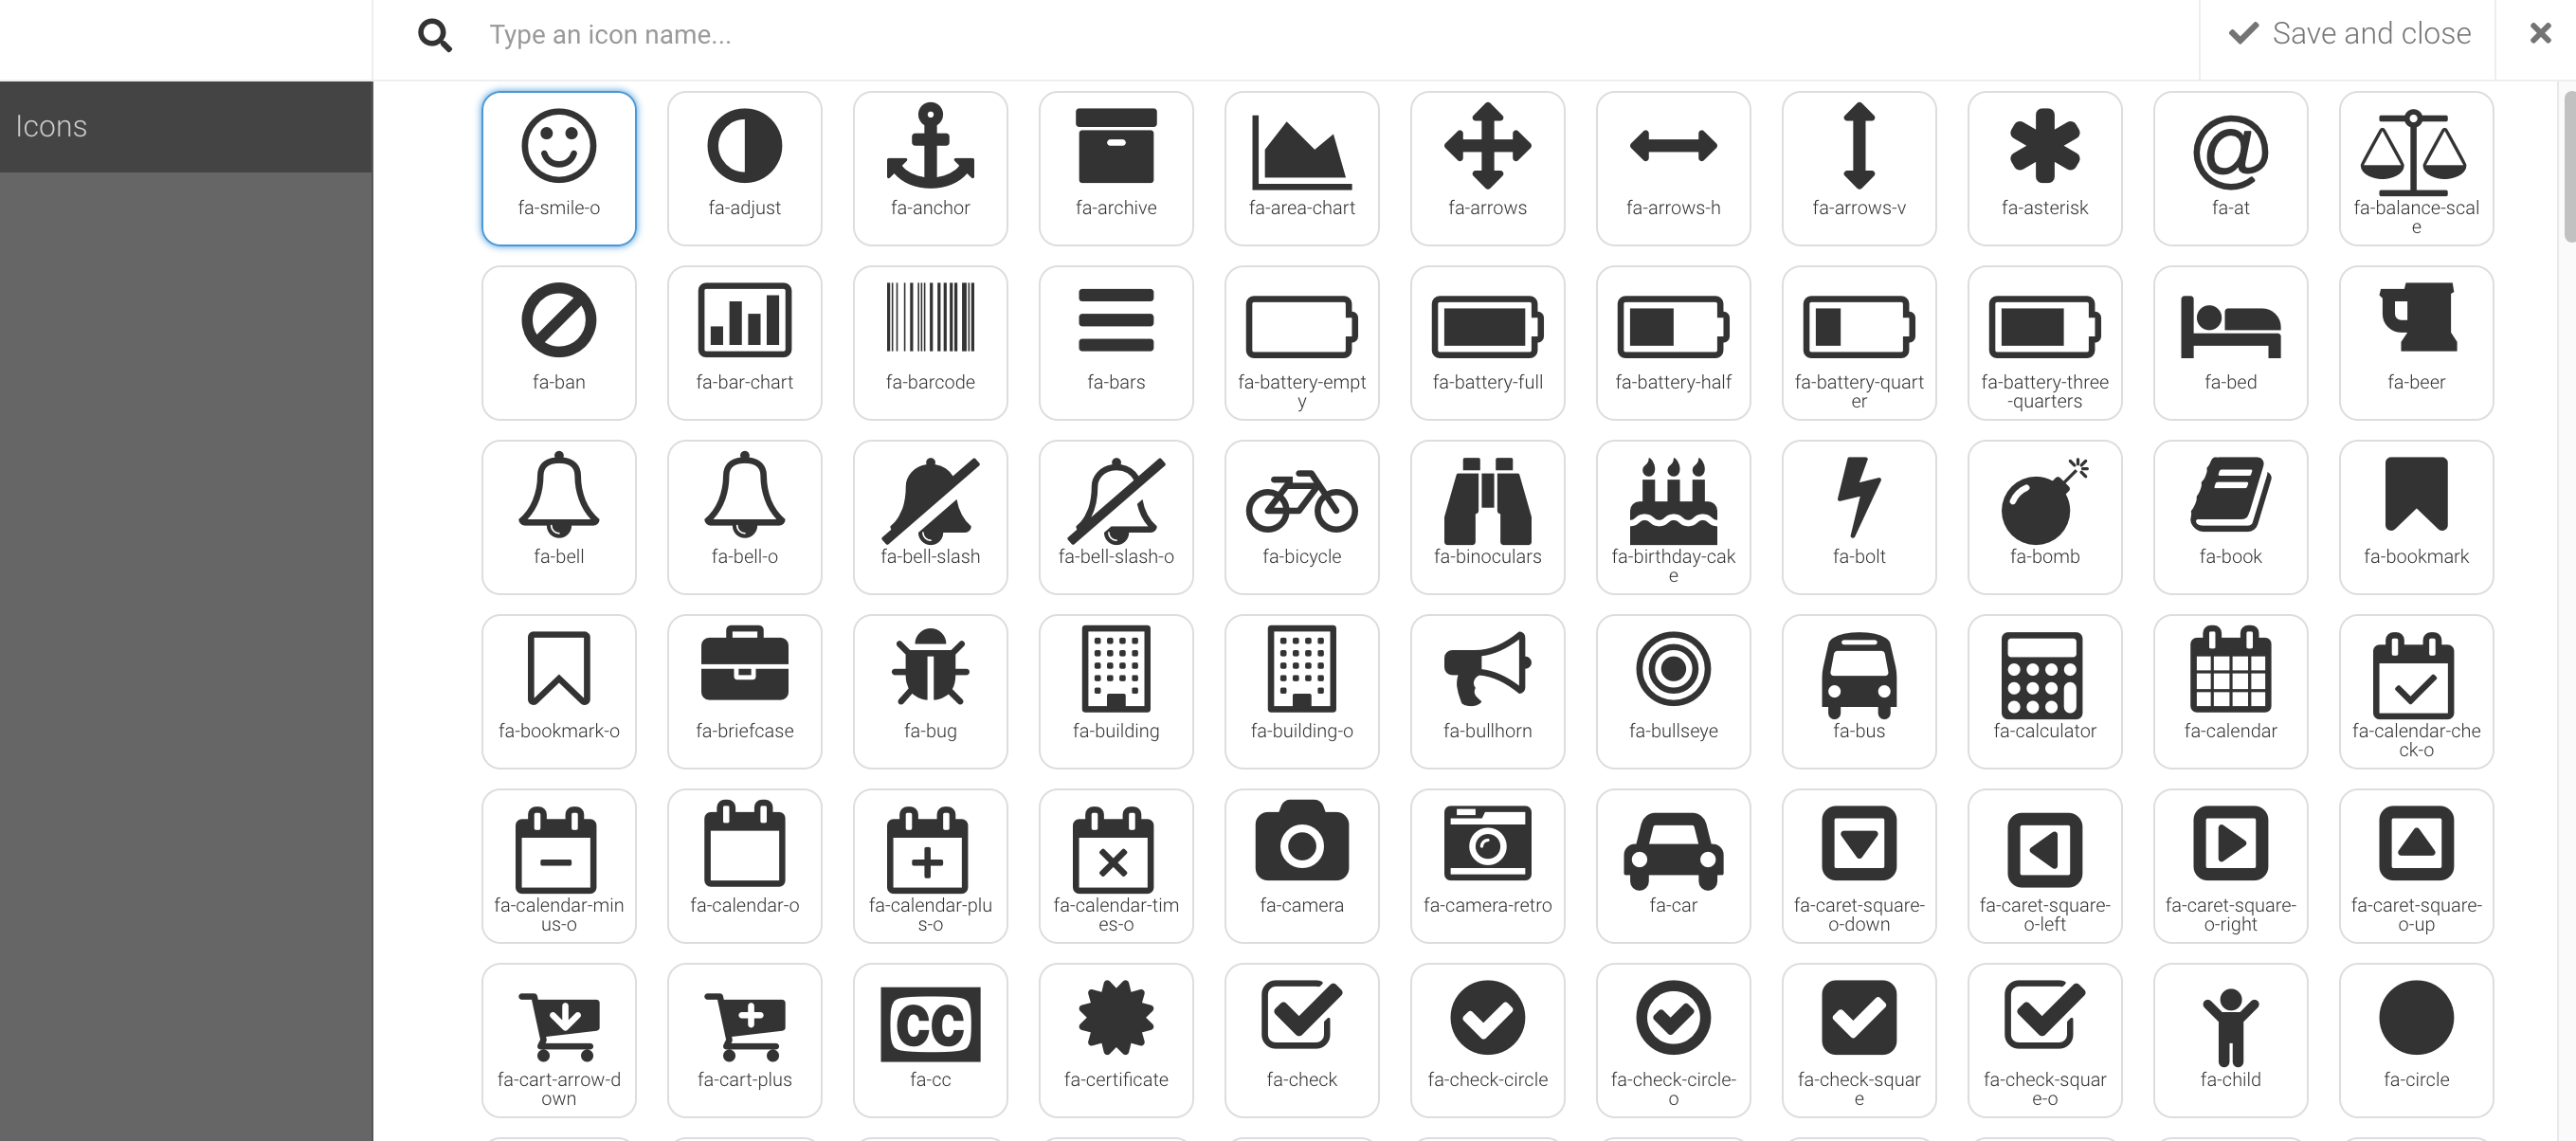 Image and Icon Libraries